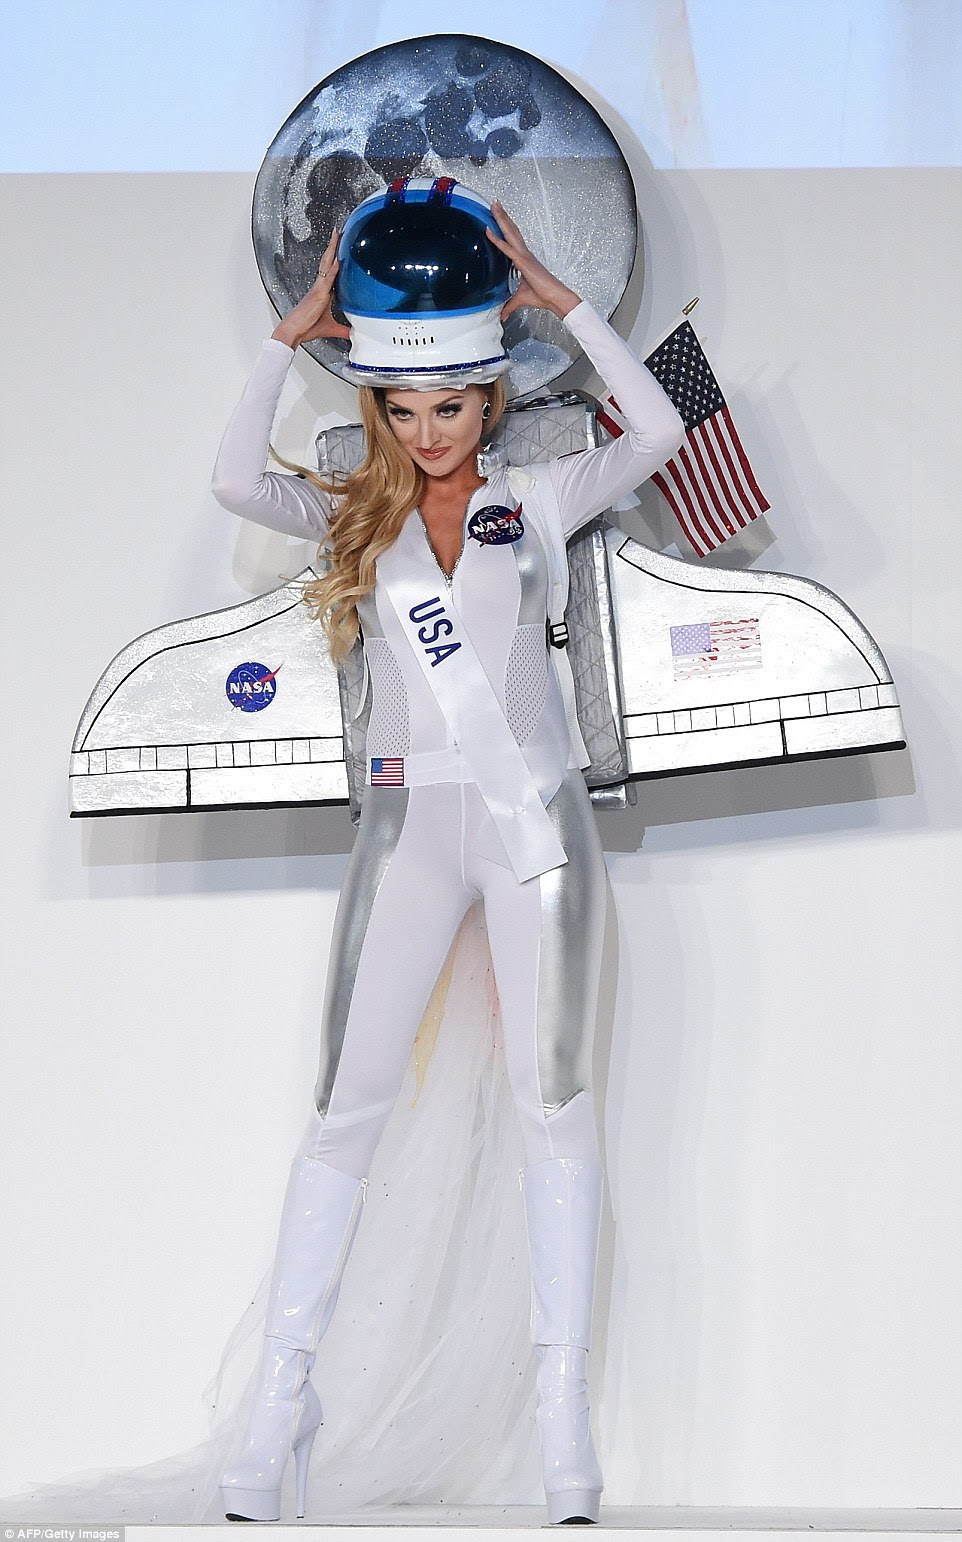 Lindsay Becker teamed a skintight white and silver catsuit adorned with a NASA badge with knee-high white PVC boots and an astronaut helmet. She also wore a cardboard spaceship as a backpack, complete with firing jets, a sparkly American flag and a moon, which created an ethereal halo above Lindsay's head